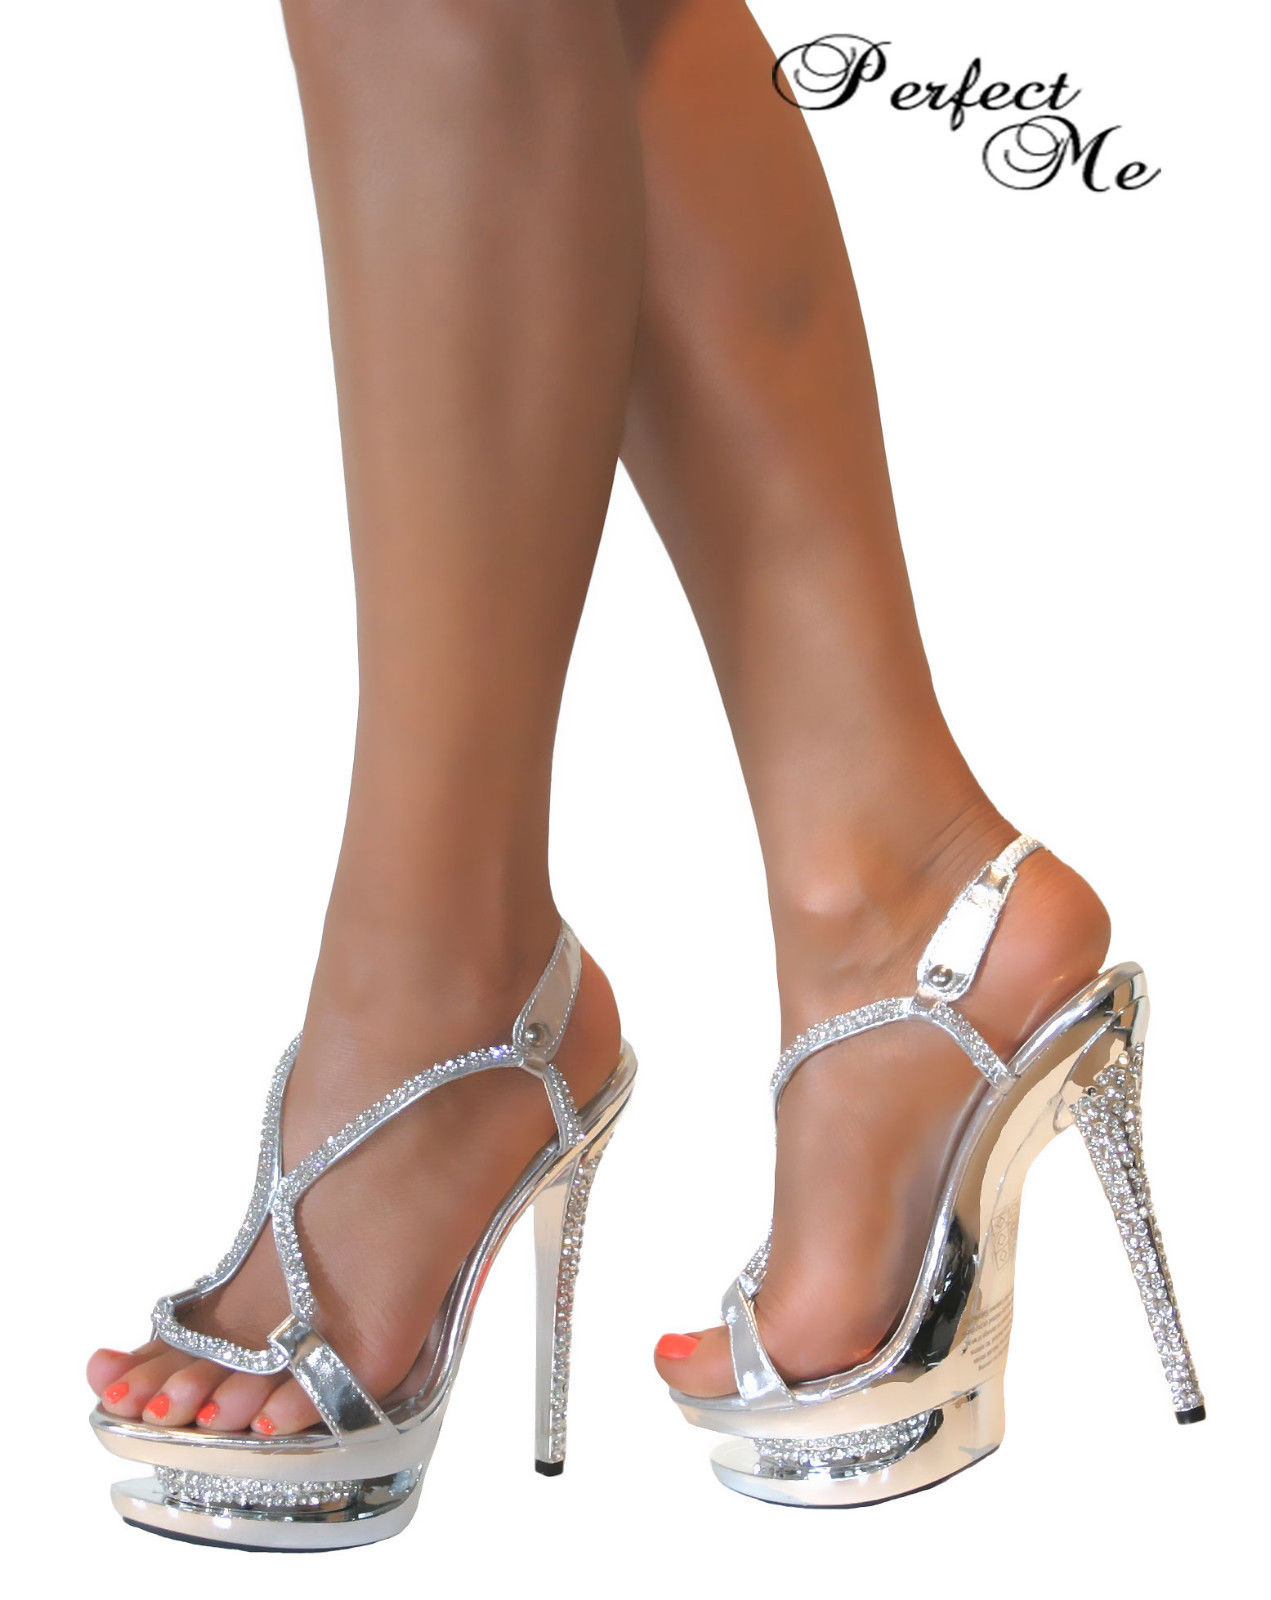 LADIES CRYSTAL GLITTER DOUBLE PLATFORM STRAPPY STILETTO HIGH HEEL ...